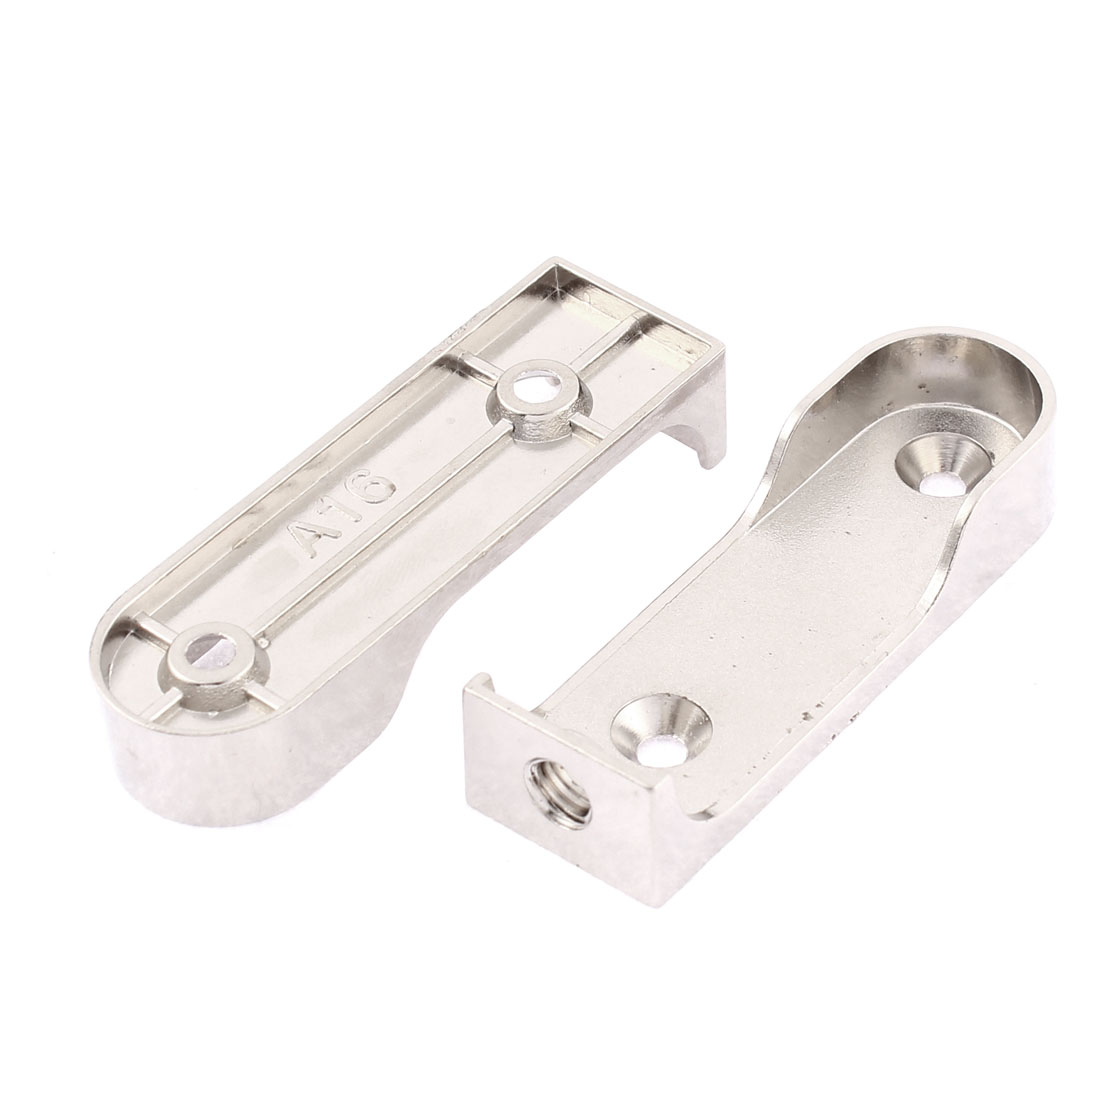 Clothes Closet Rod Flange Holder Support Bracket 63mm Length 2Pcs